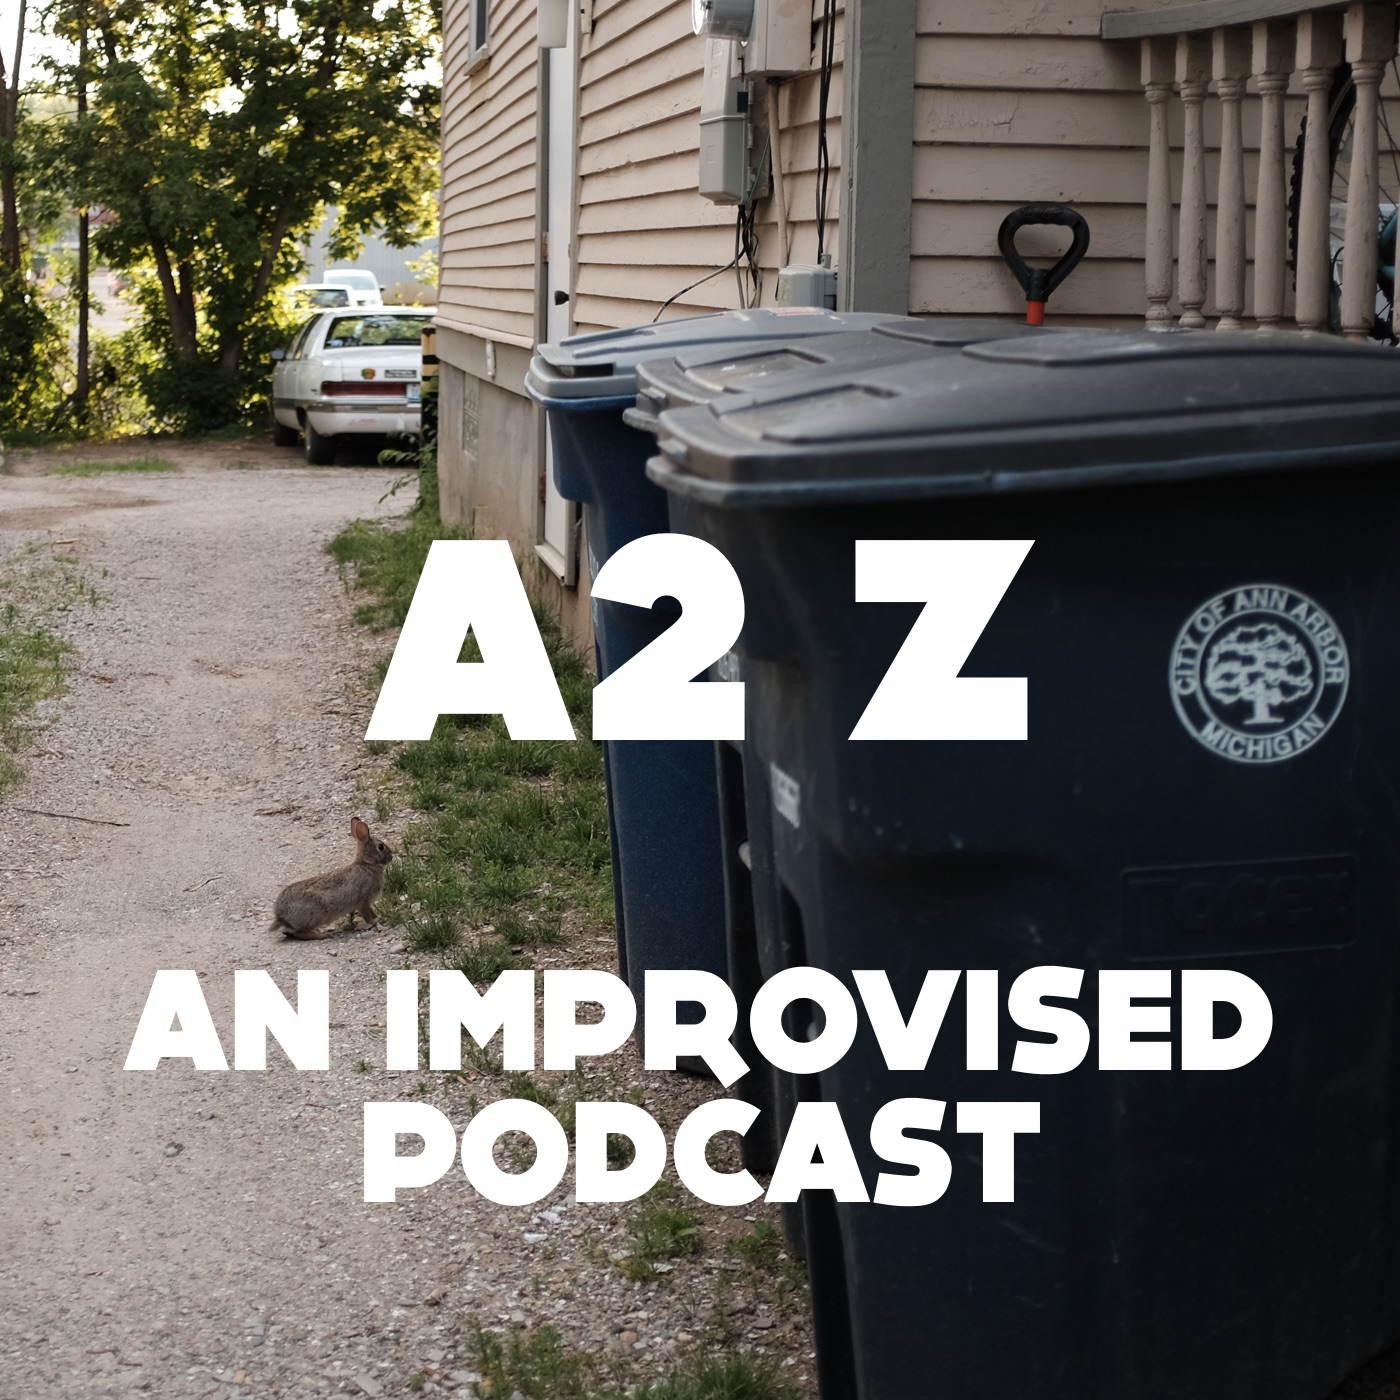 A2Z: An Improvised Podcast